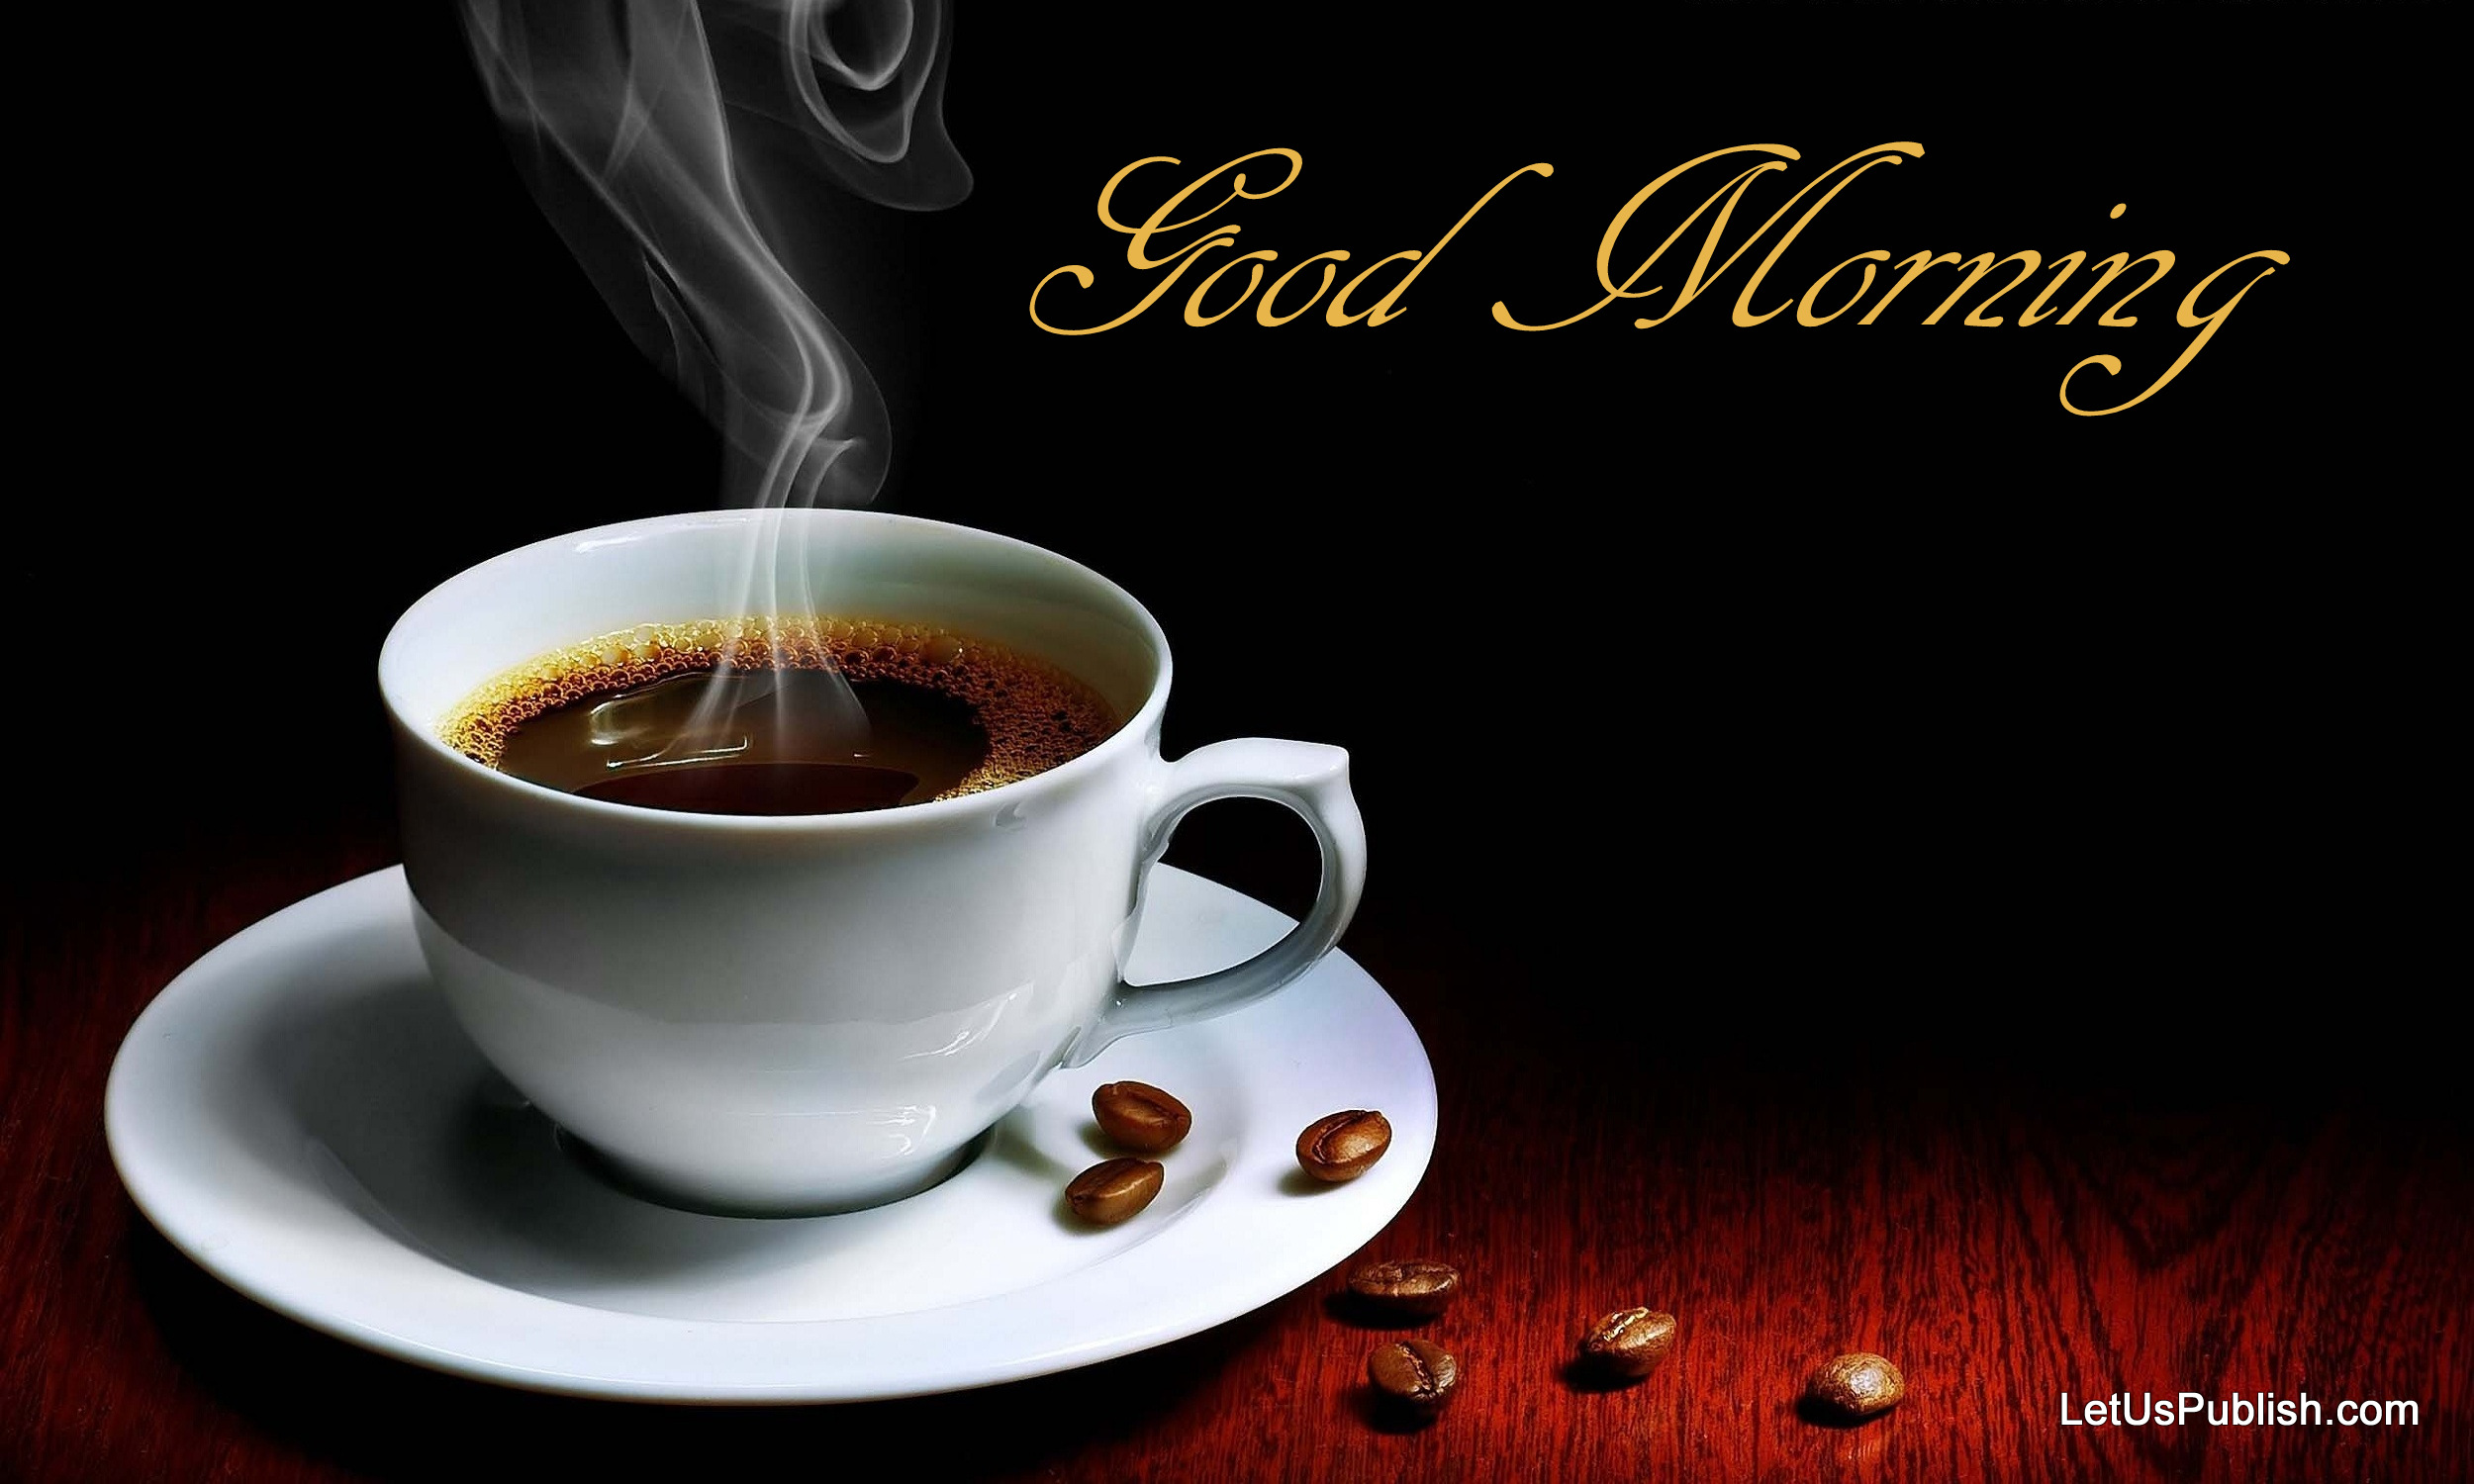 Good Morning Coffee: Good Morning Wallpapers Free Download